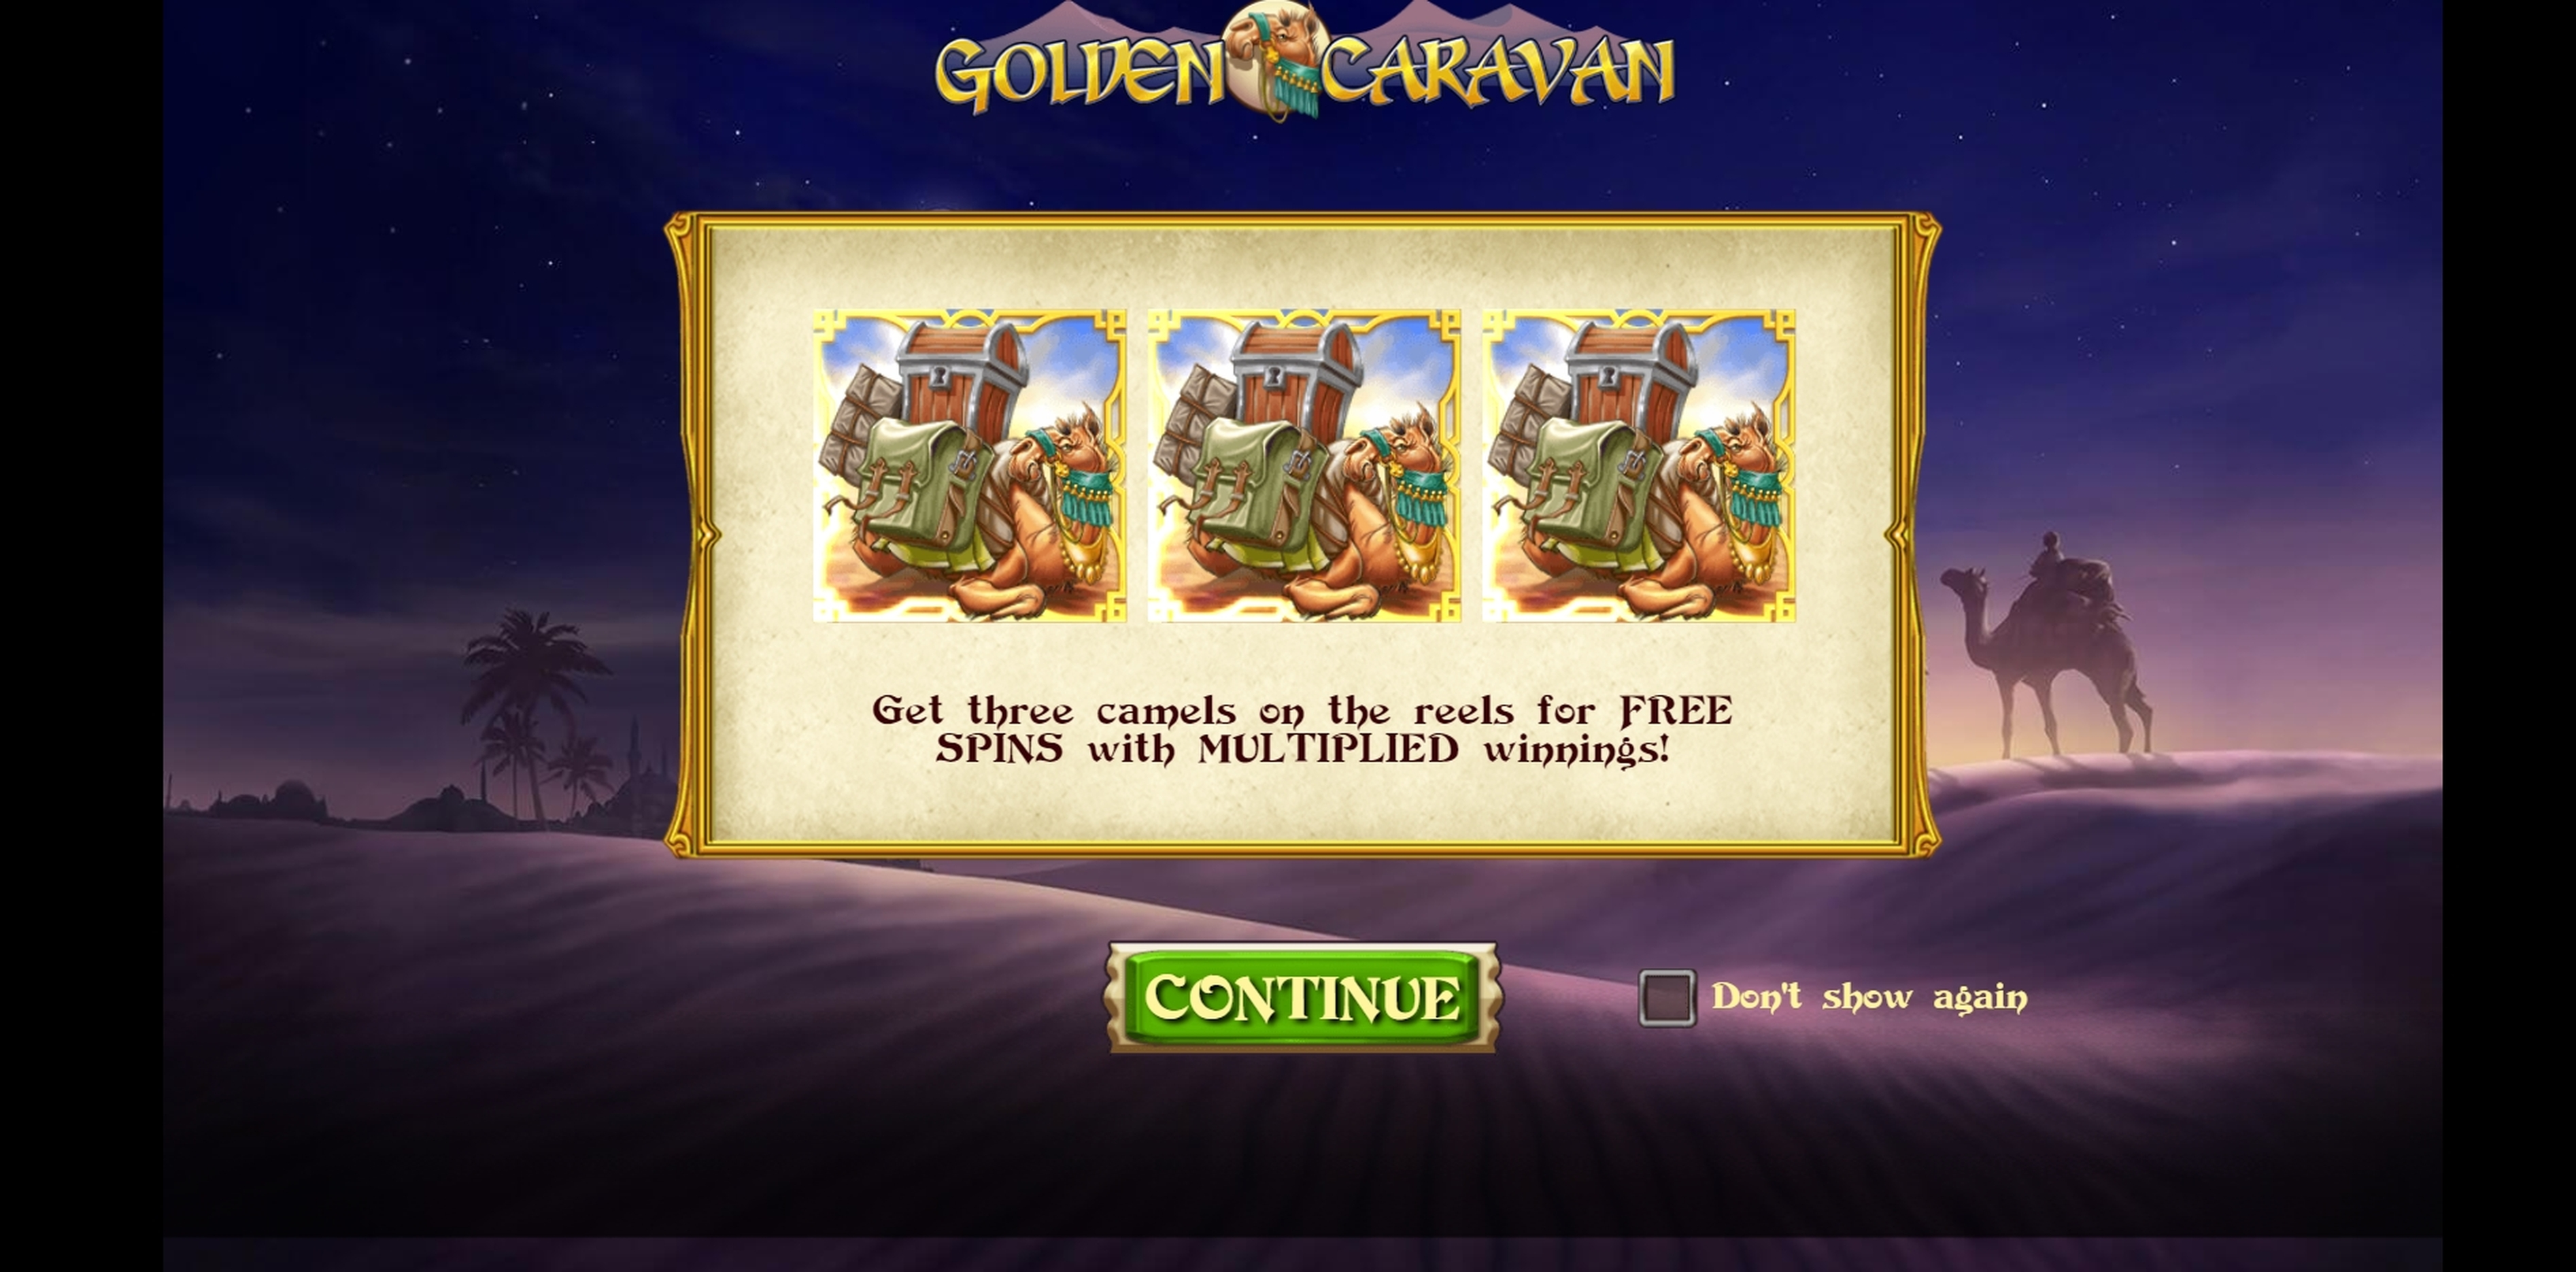 Play Golden Caravan Free Casino Slot Game by Play'n Go